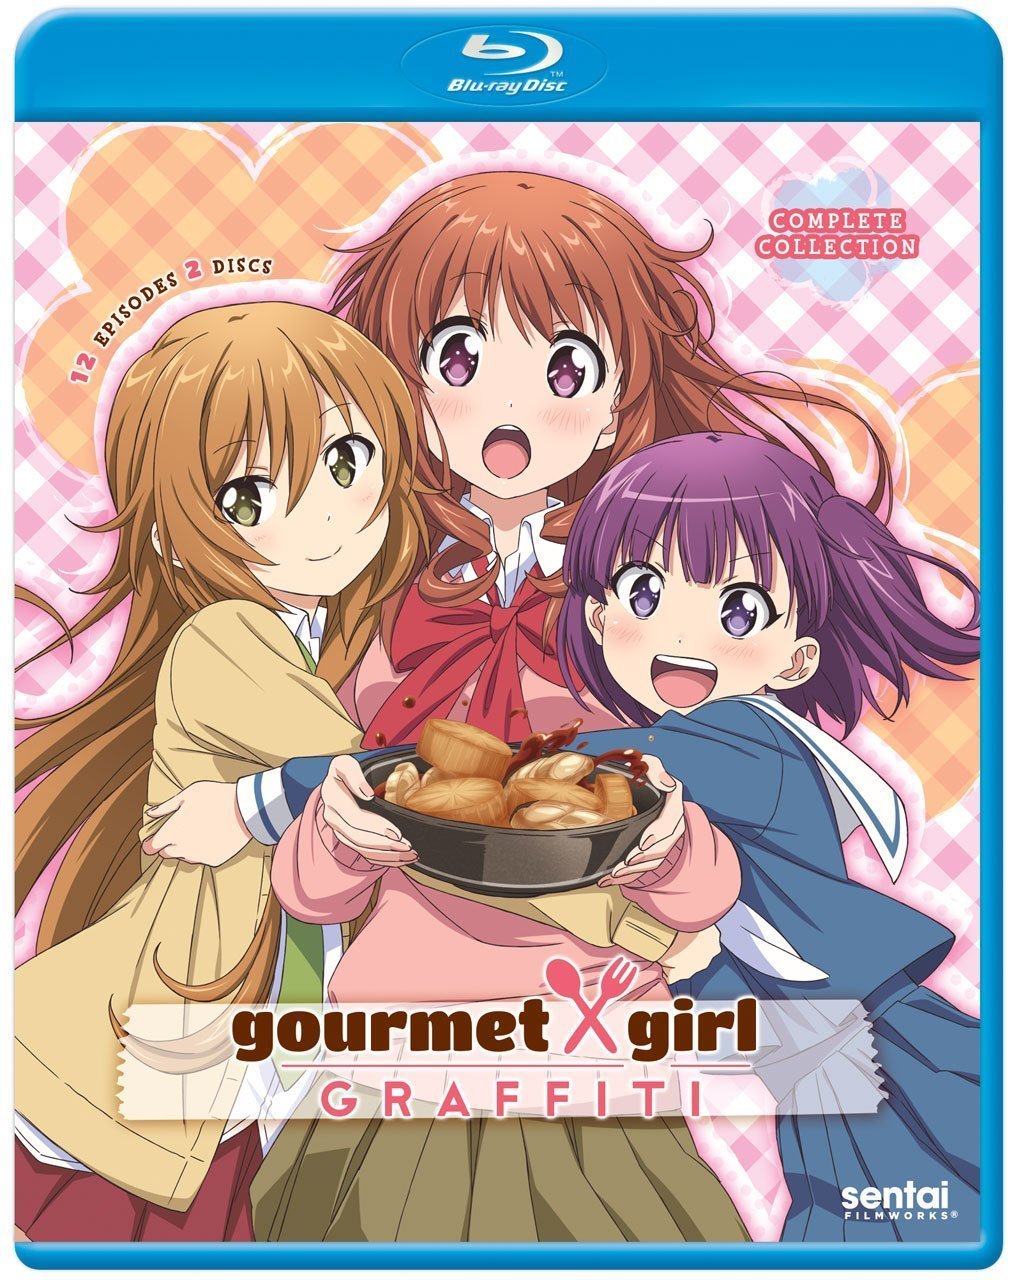 gourmet-girl-graffiti-box-art